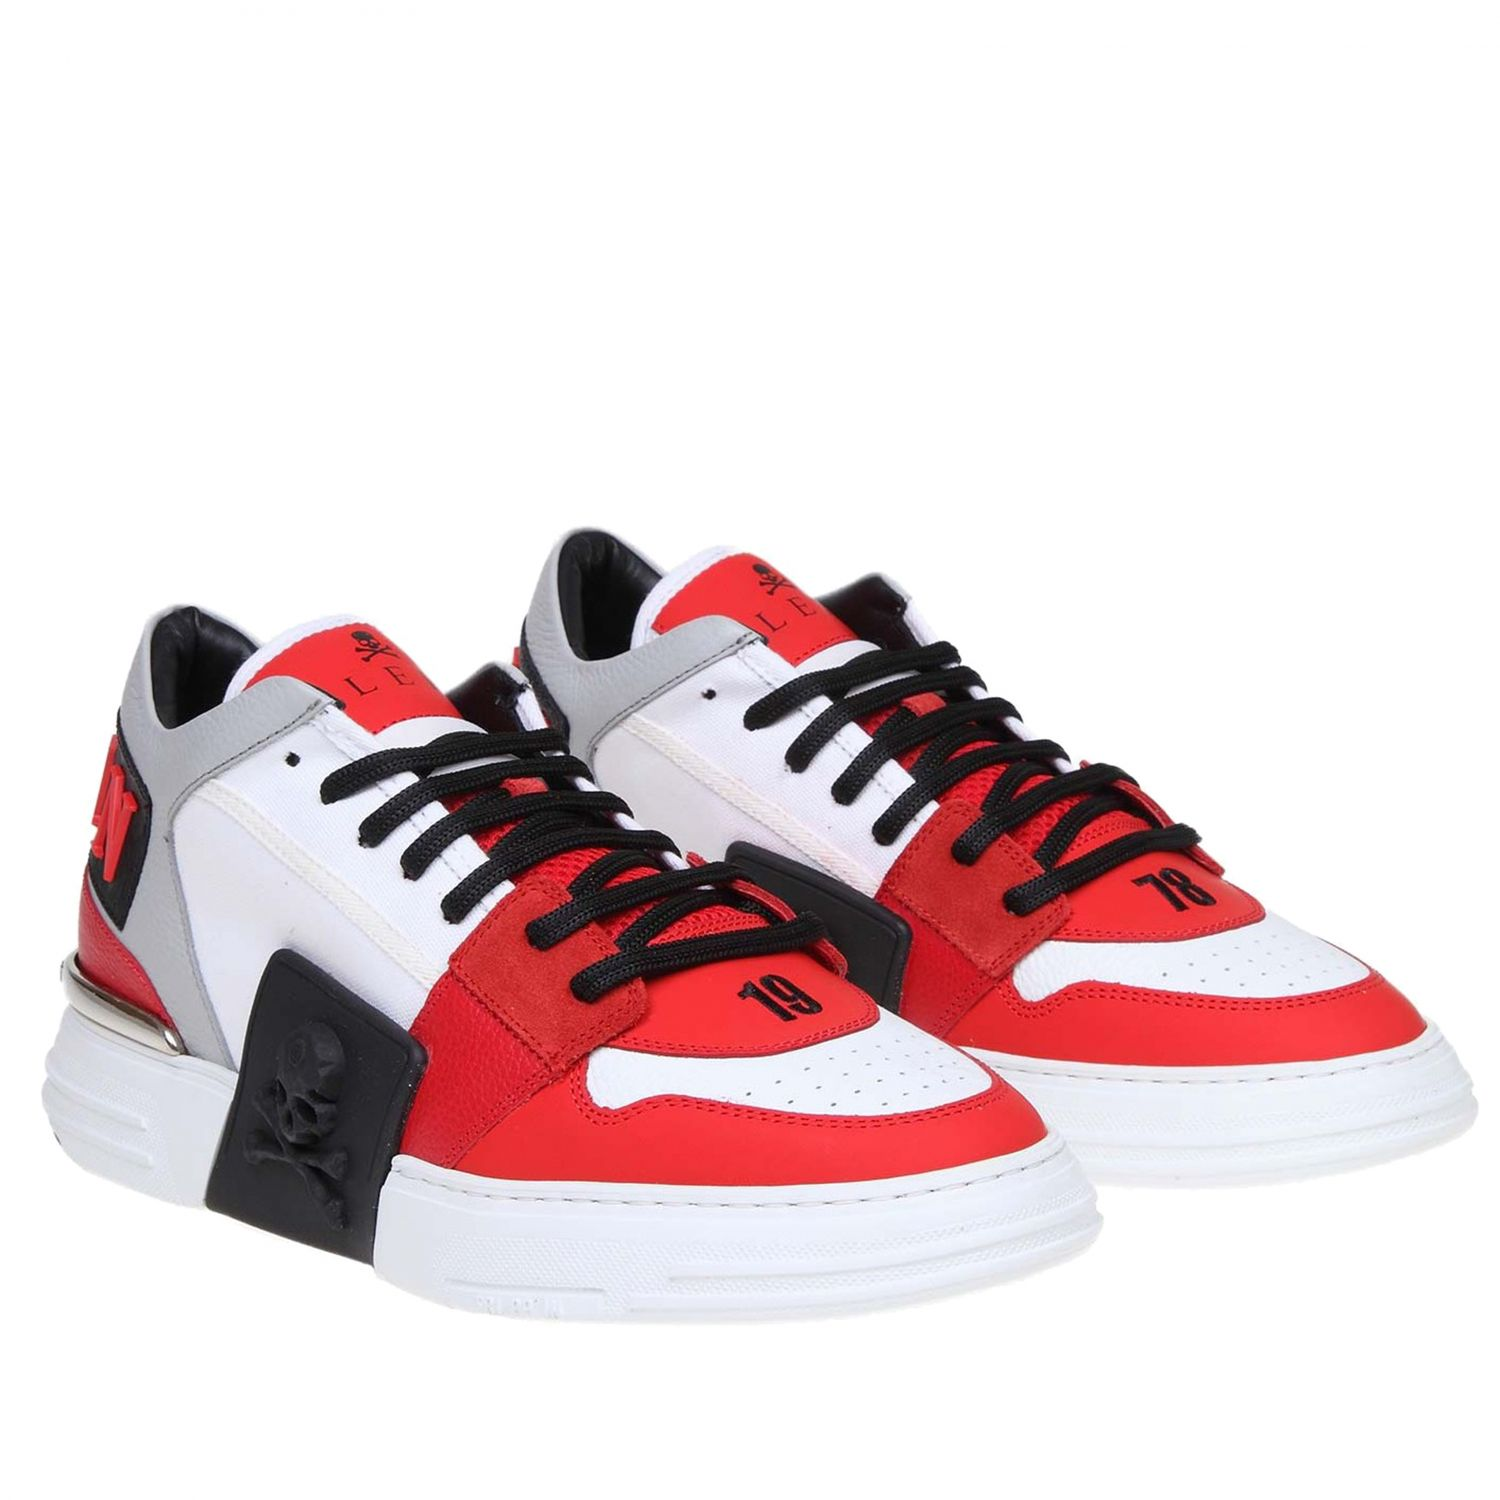 Sneakers men Philipp Plein red 2